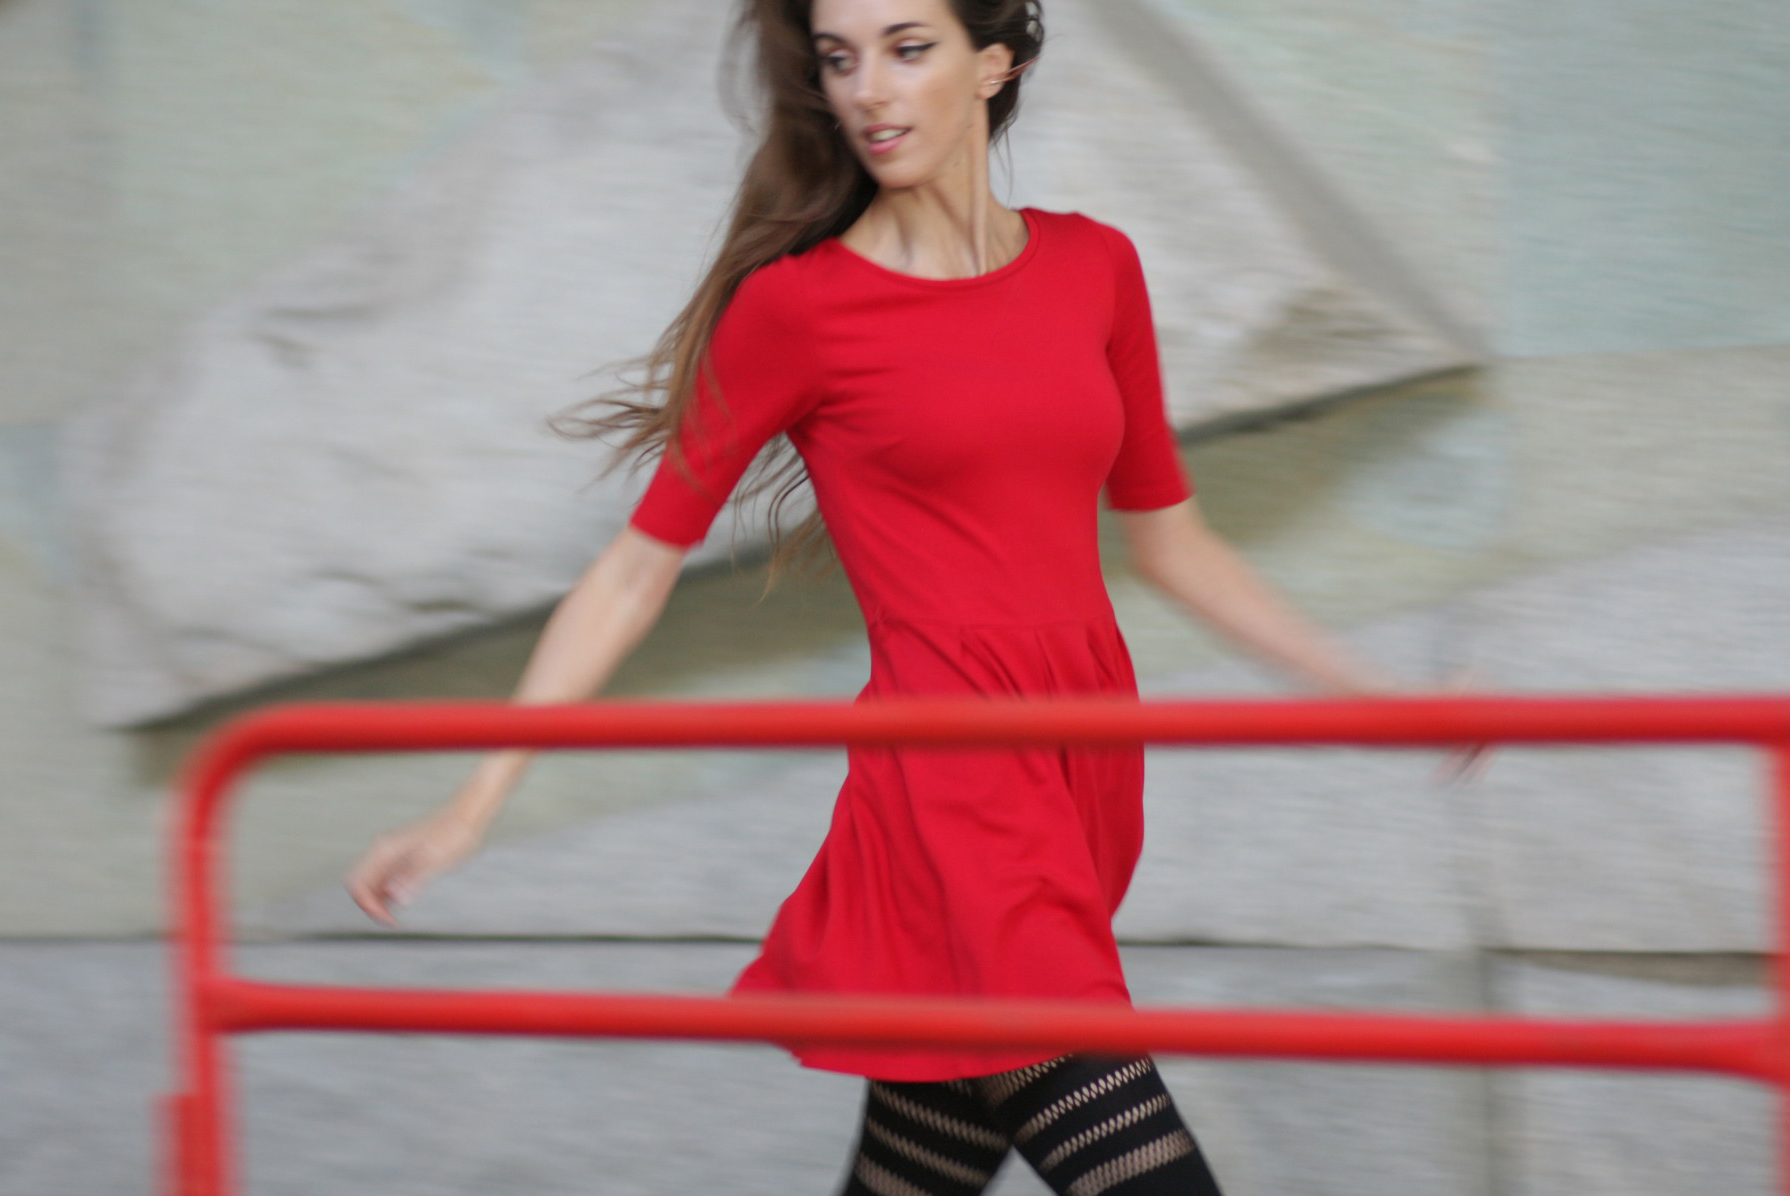 BlackMilkClothing tights review by Grterblog.ru